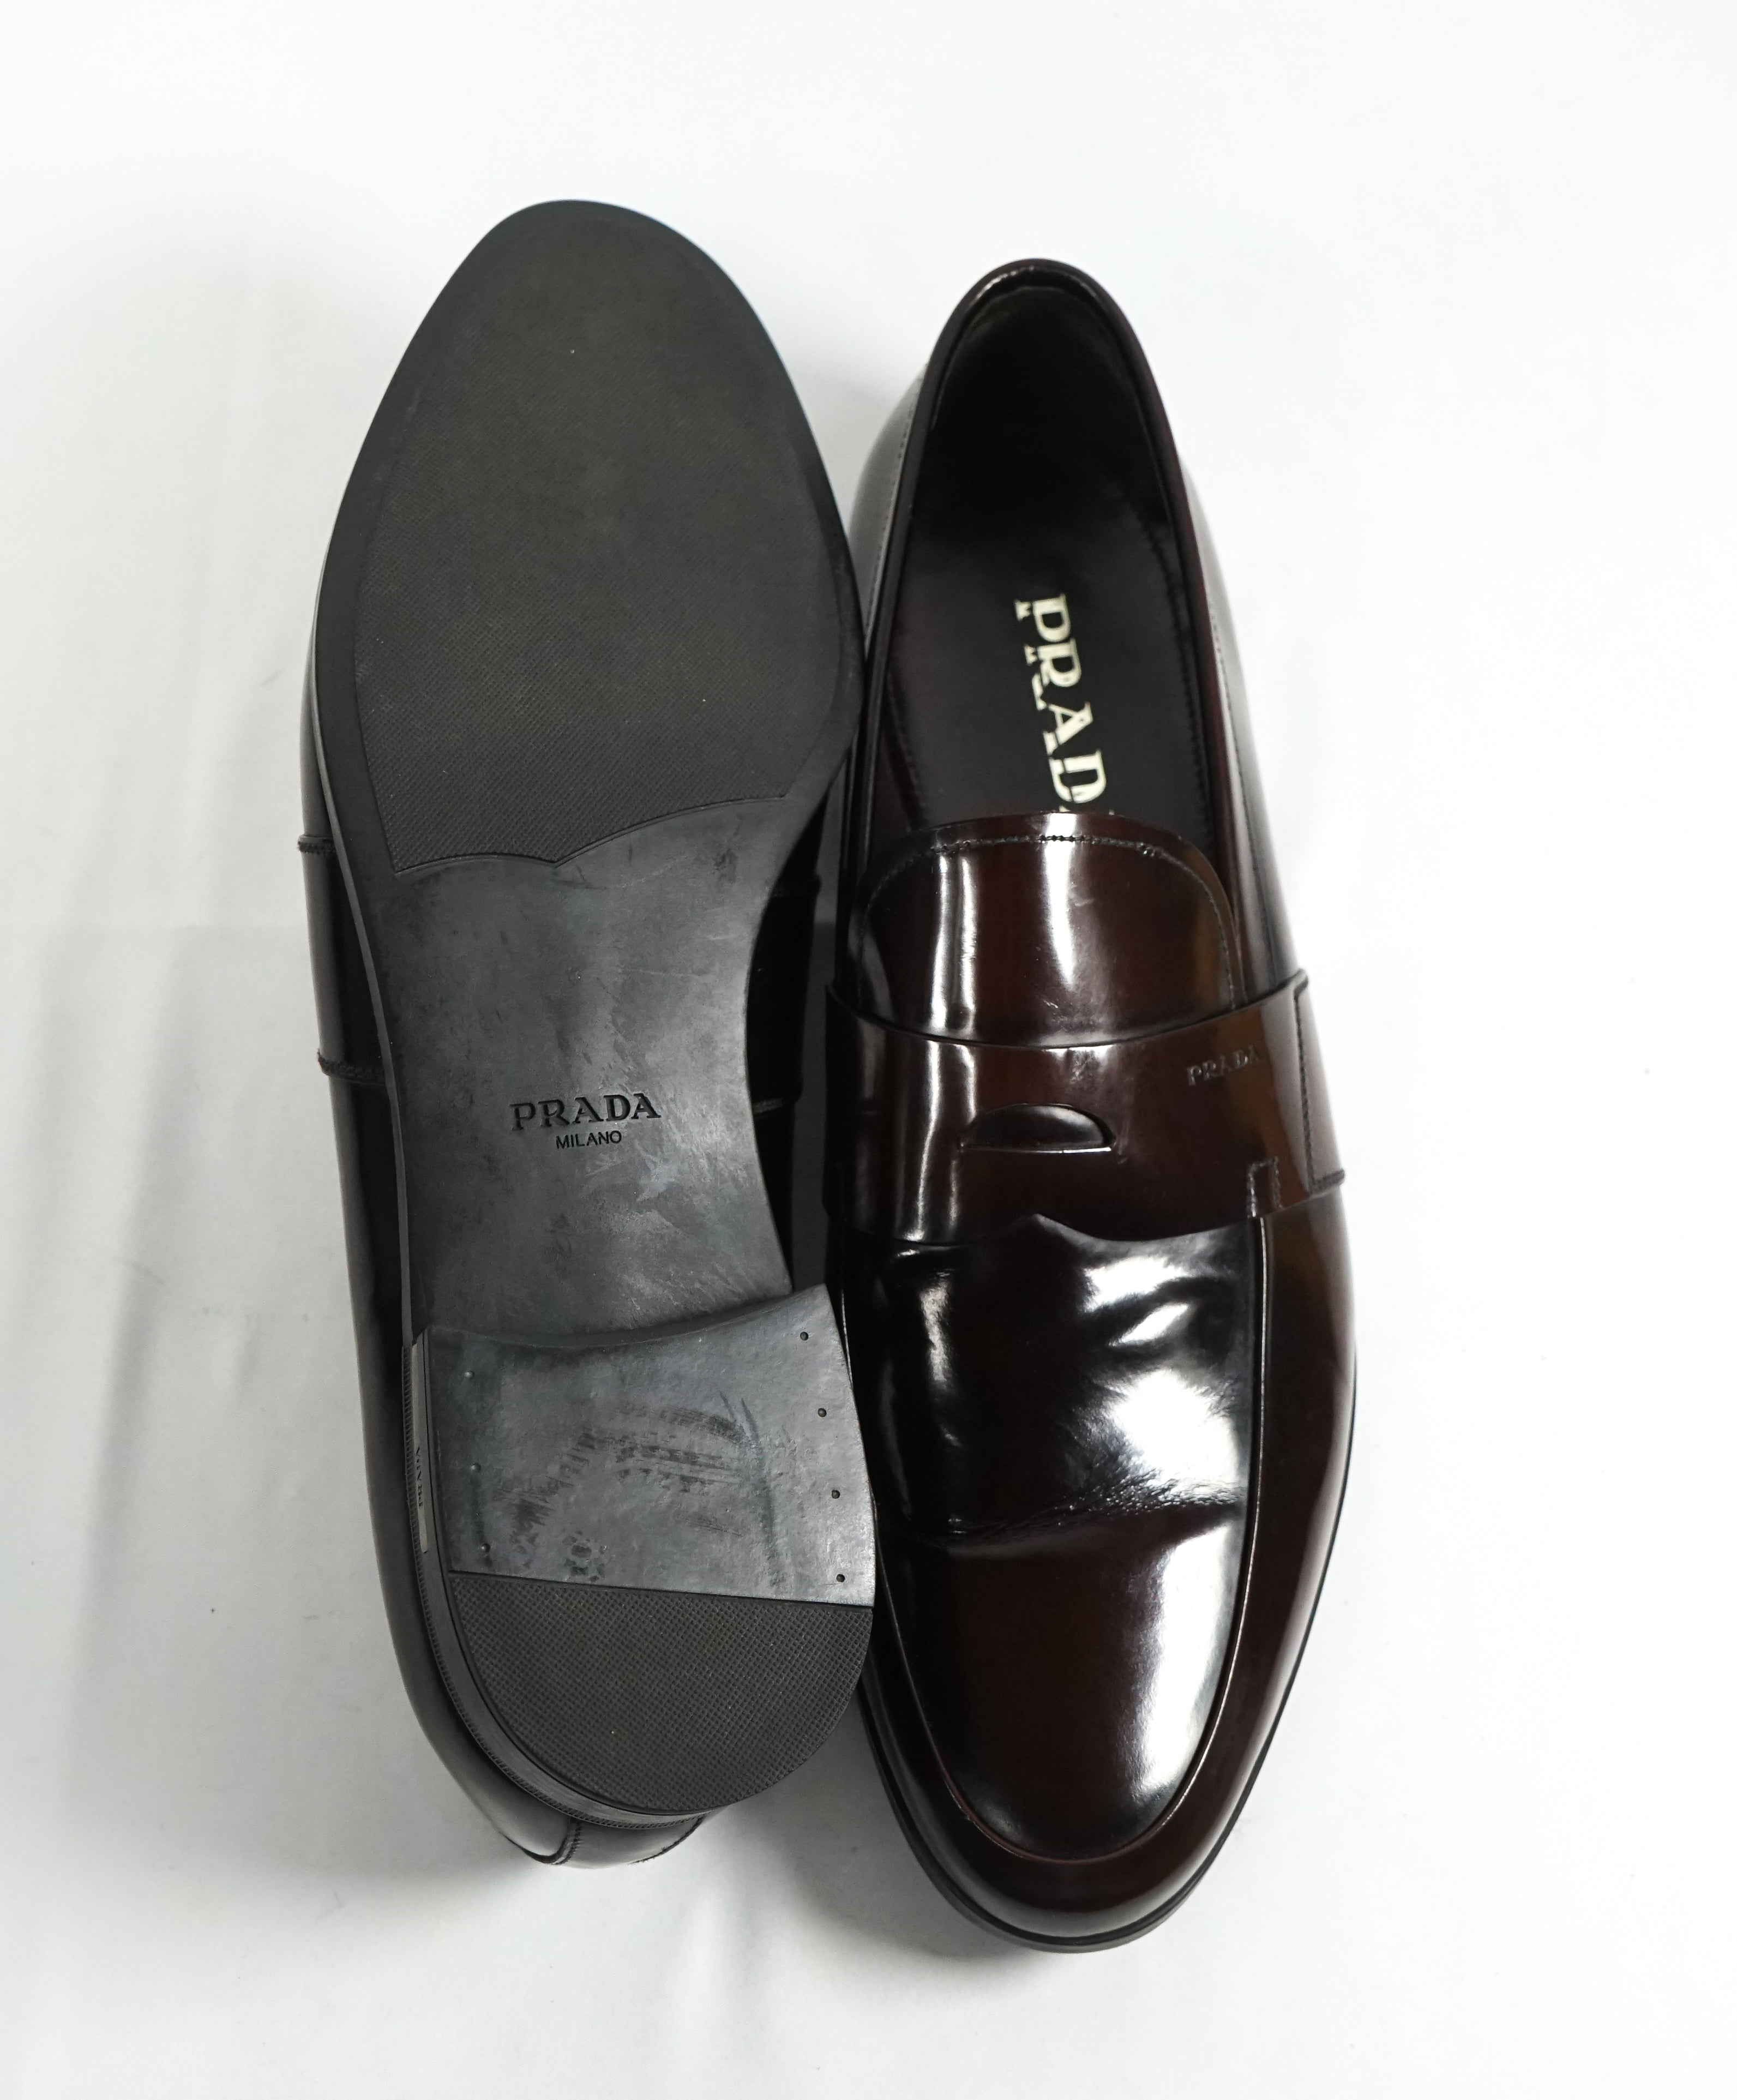 PRADA - Patent Leather Brown Spazzolato Penny Loafer With Heel - 12